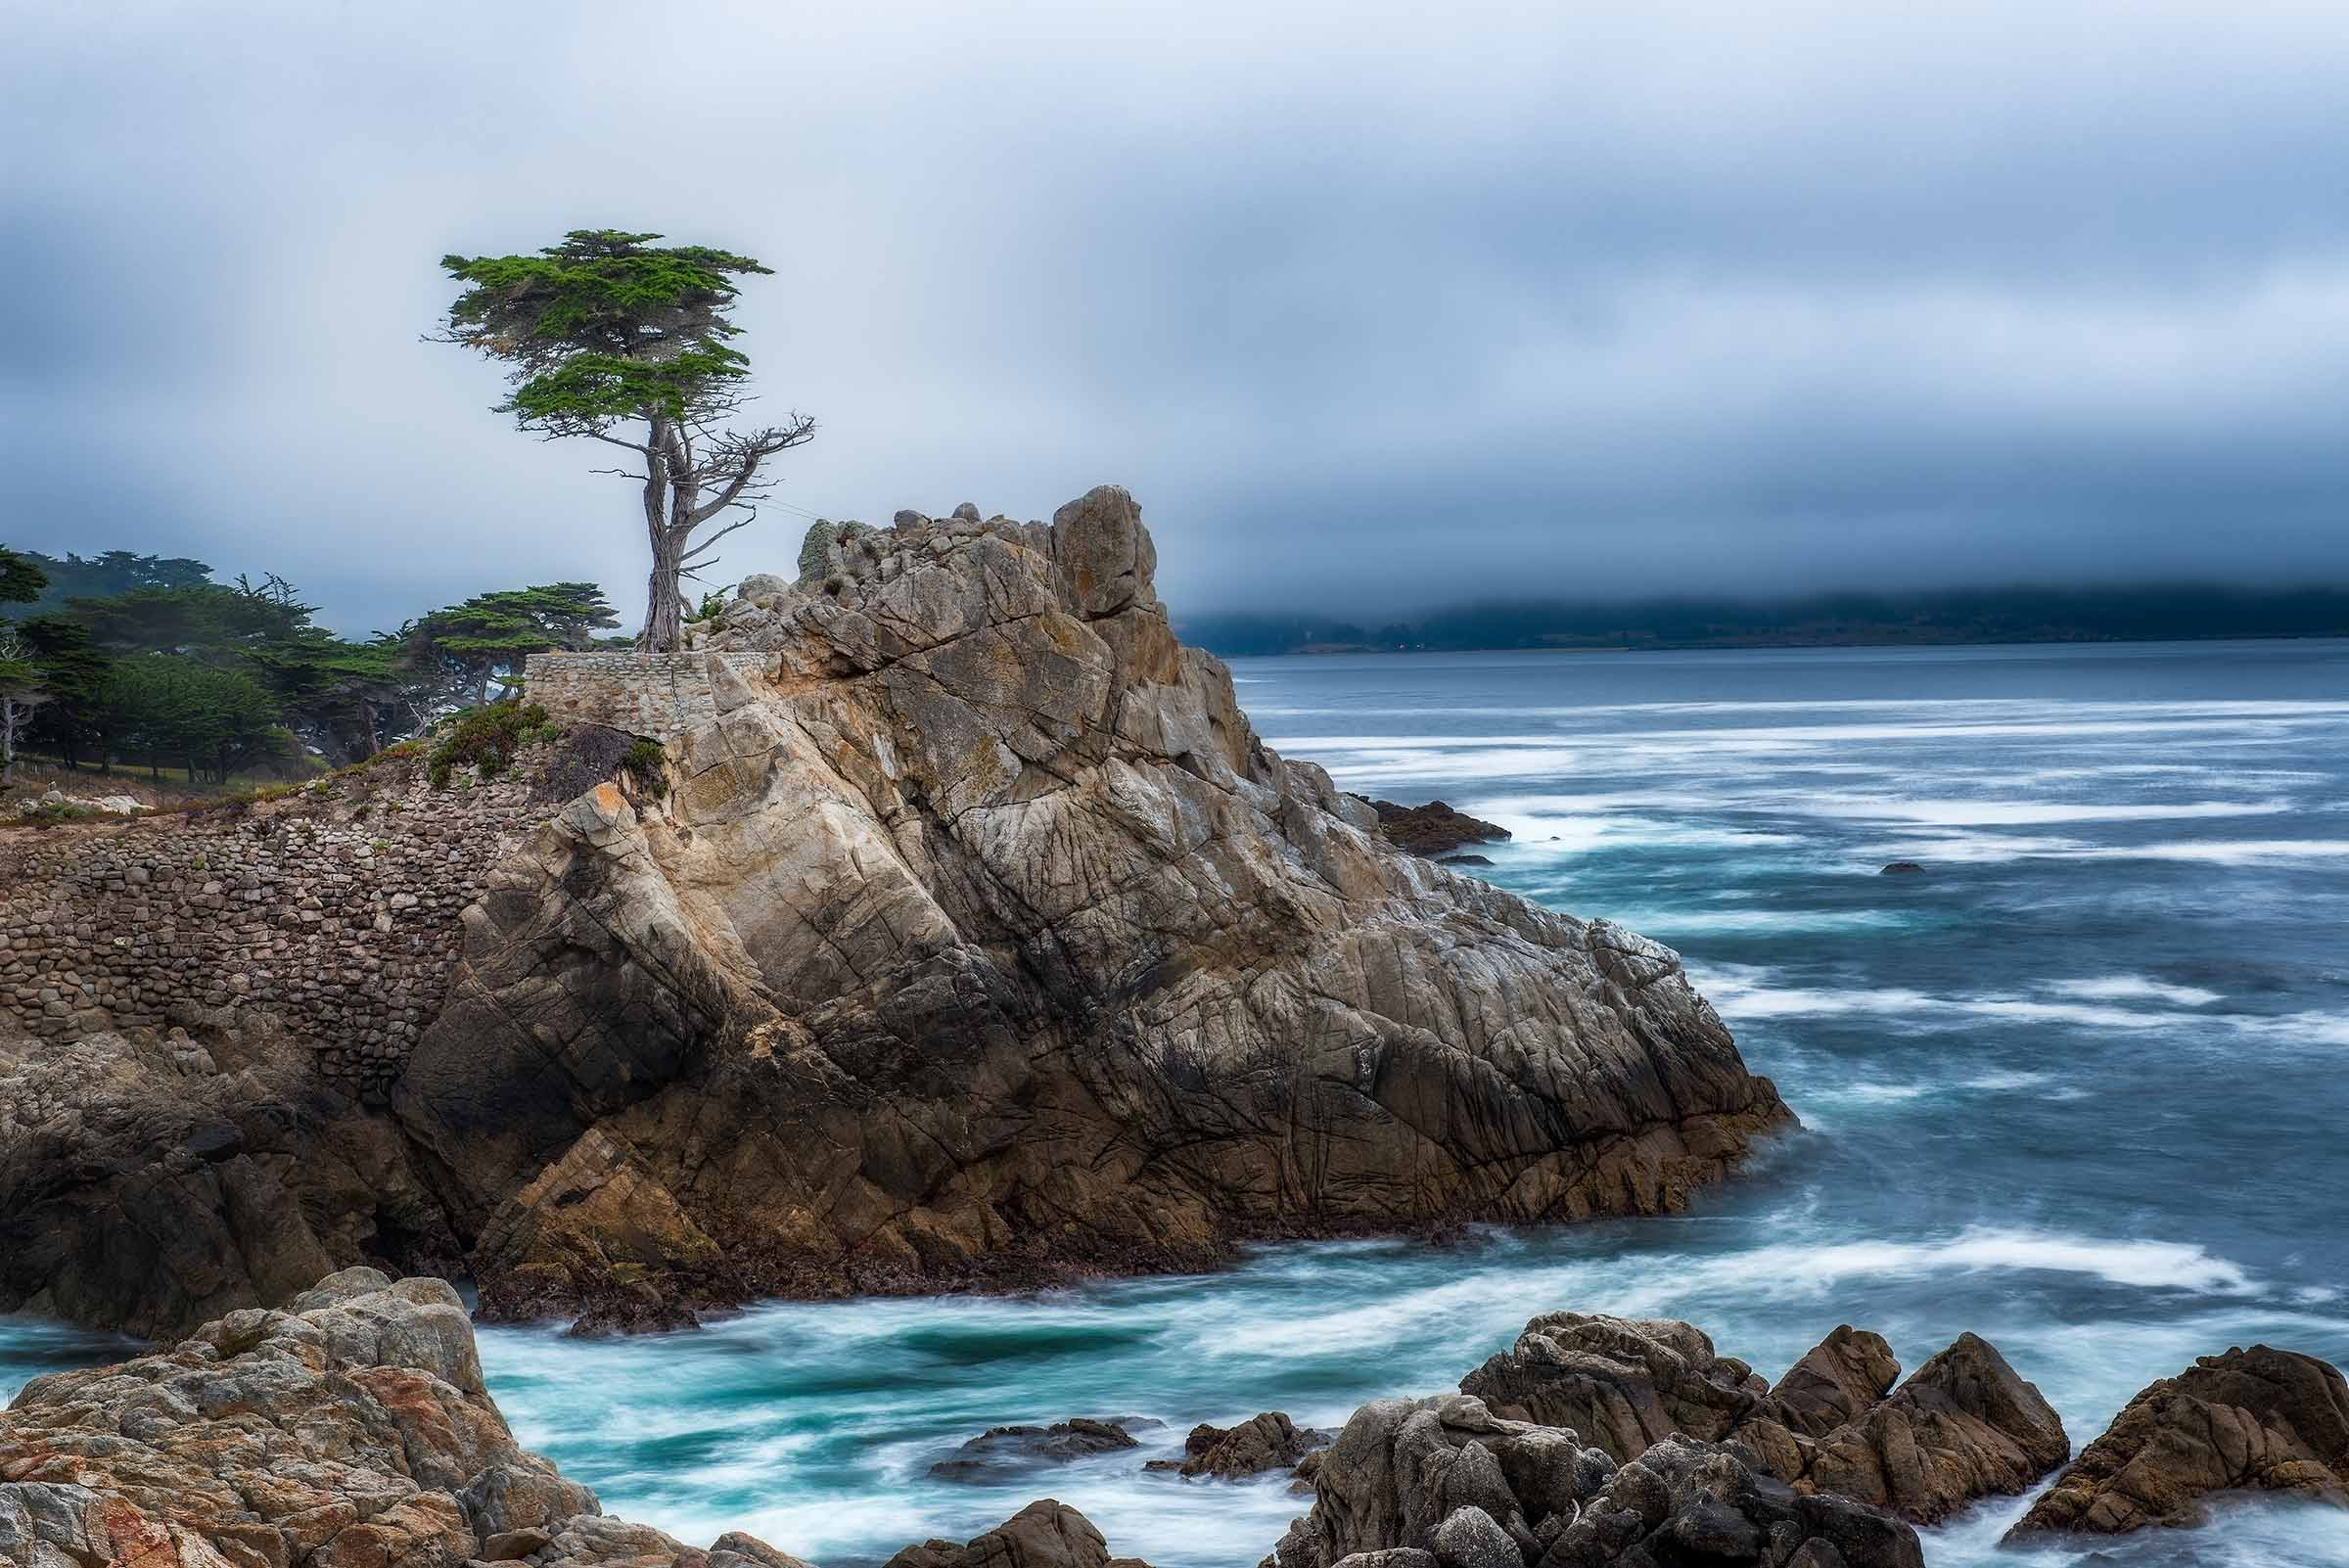 The Lone Cypress tree along the rocky coastline in Monterey, California